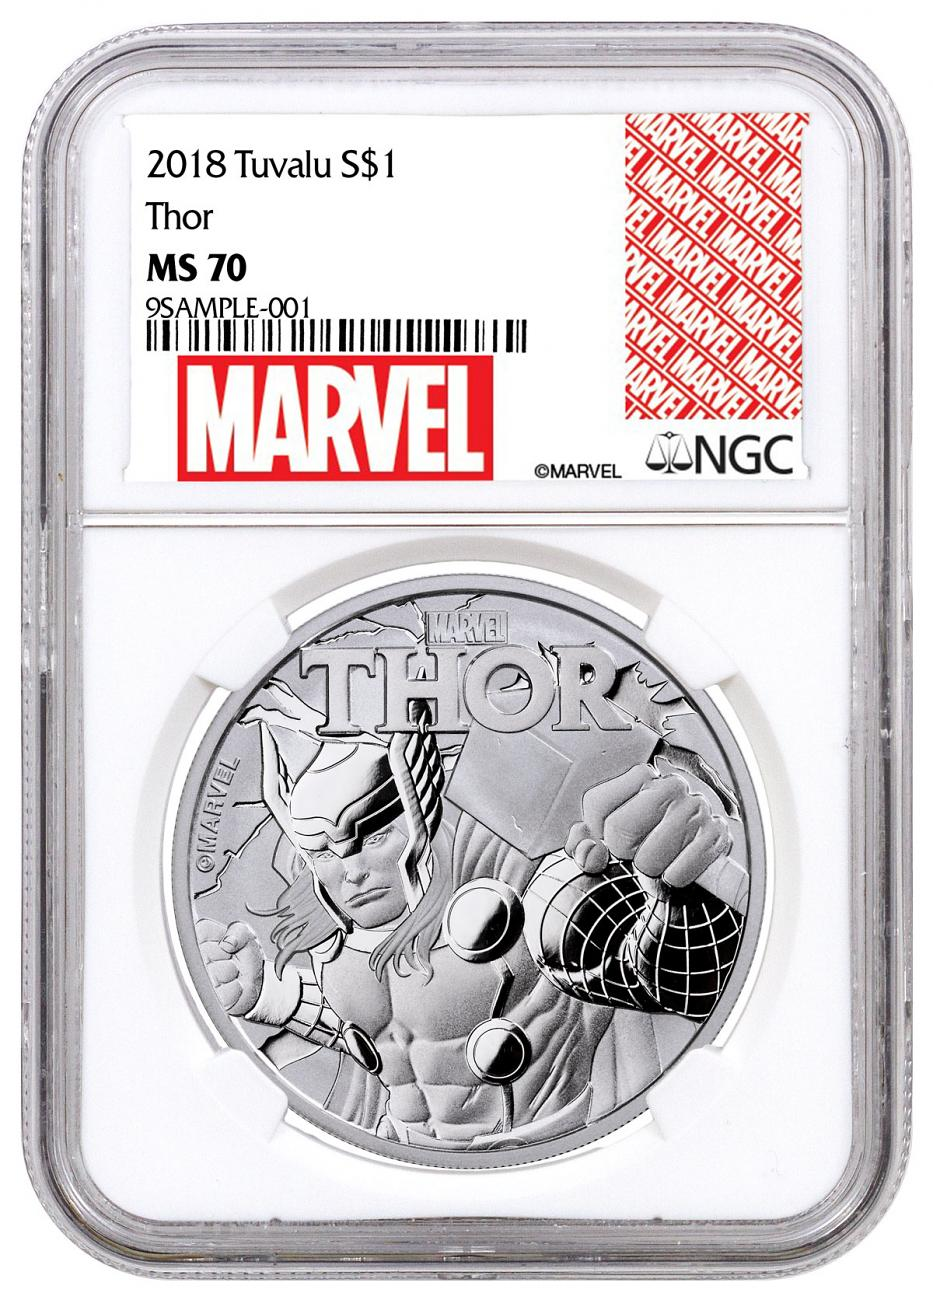 2018 Tuvalu Thor 1 oz Silver Marvel Series $1 Coin NGC MS70 Exclusive Marvel Label